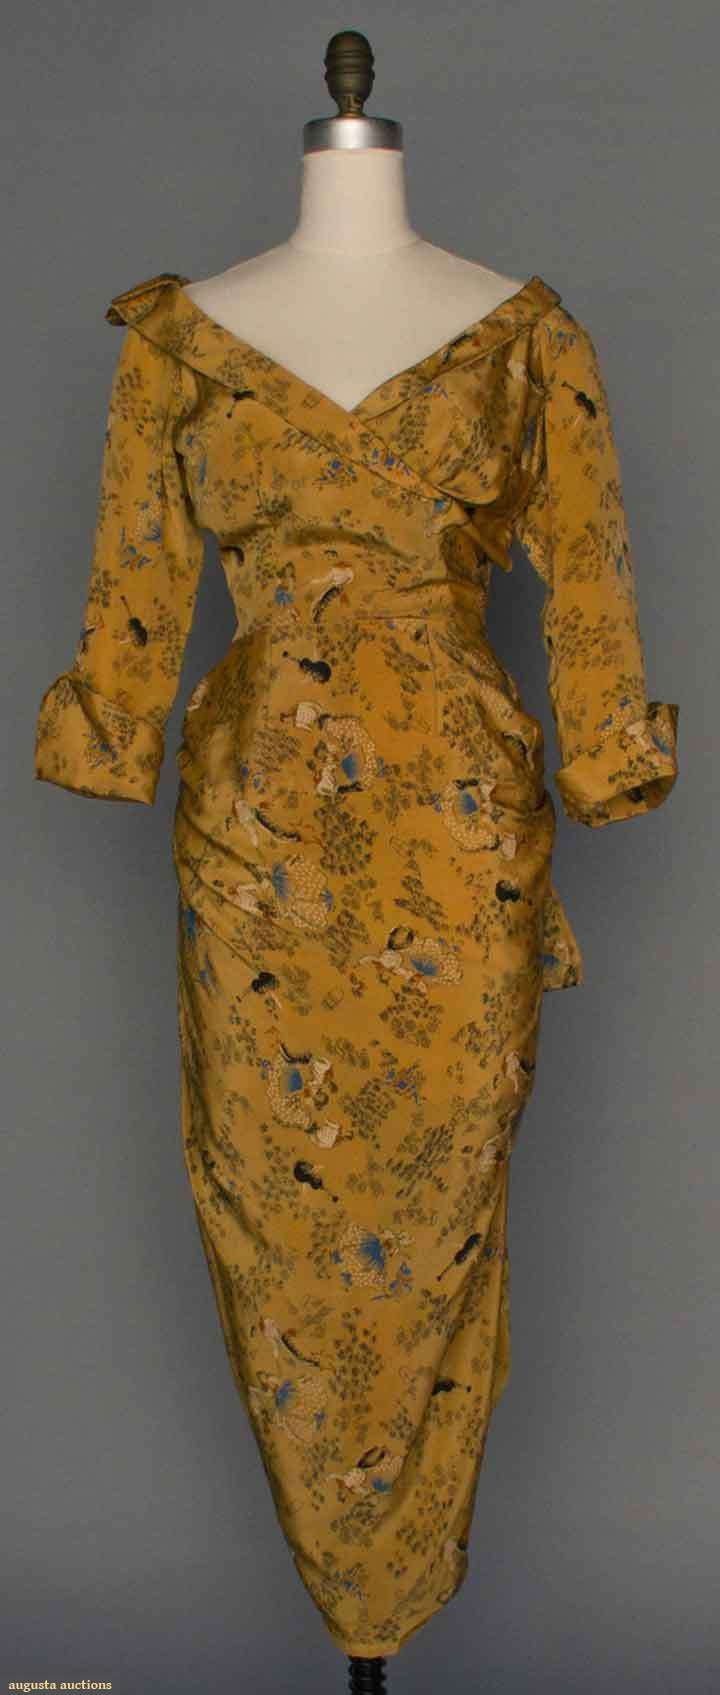 Late 1940s Ceil Chapman curry-colored silk dress w/pencil print of dancing couples amongst scattered flowers, surplice bodice, narrow shawl collar, 3/4 length sleeves w/deep cuff, sarong-style wrap skirt in narrow tulip shape, with label, Via Augusta Auctions.